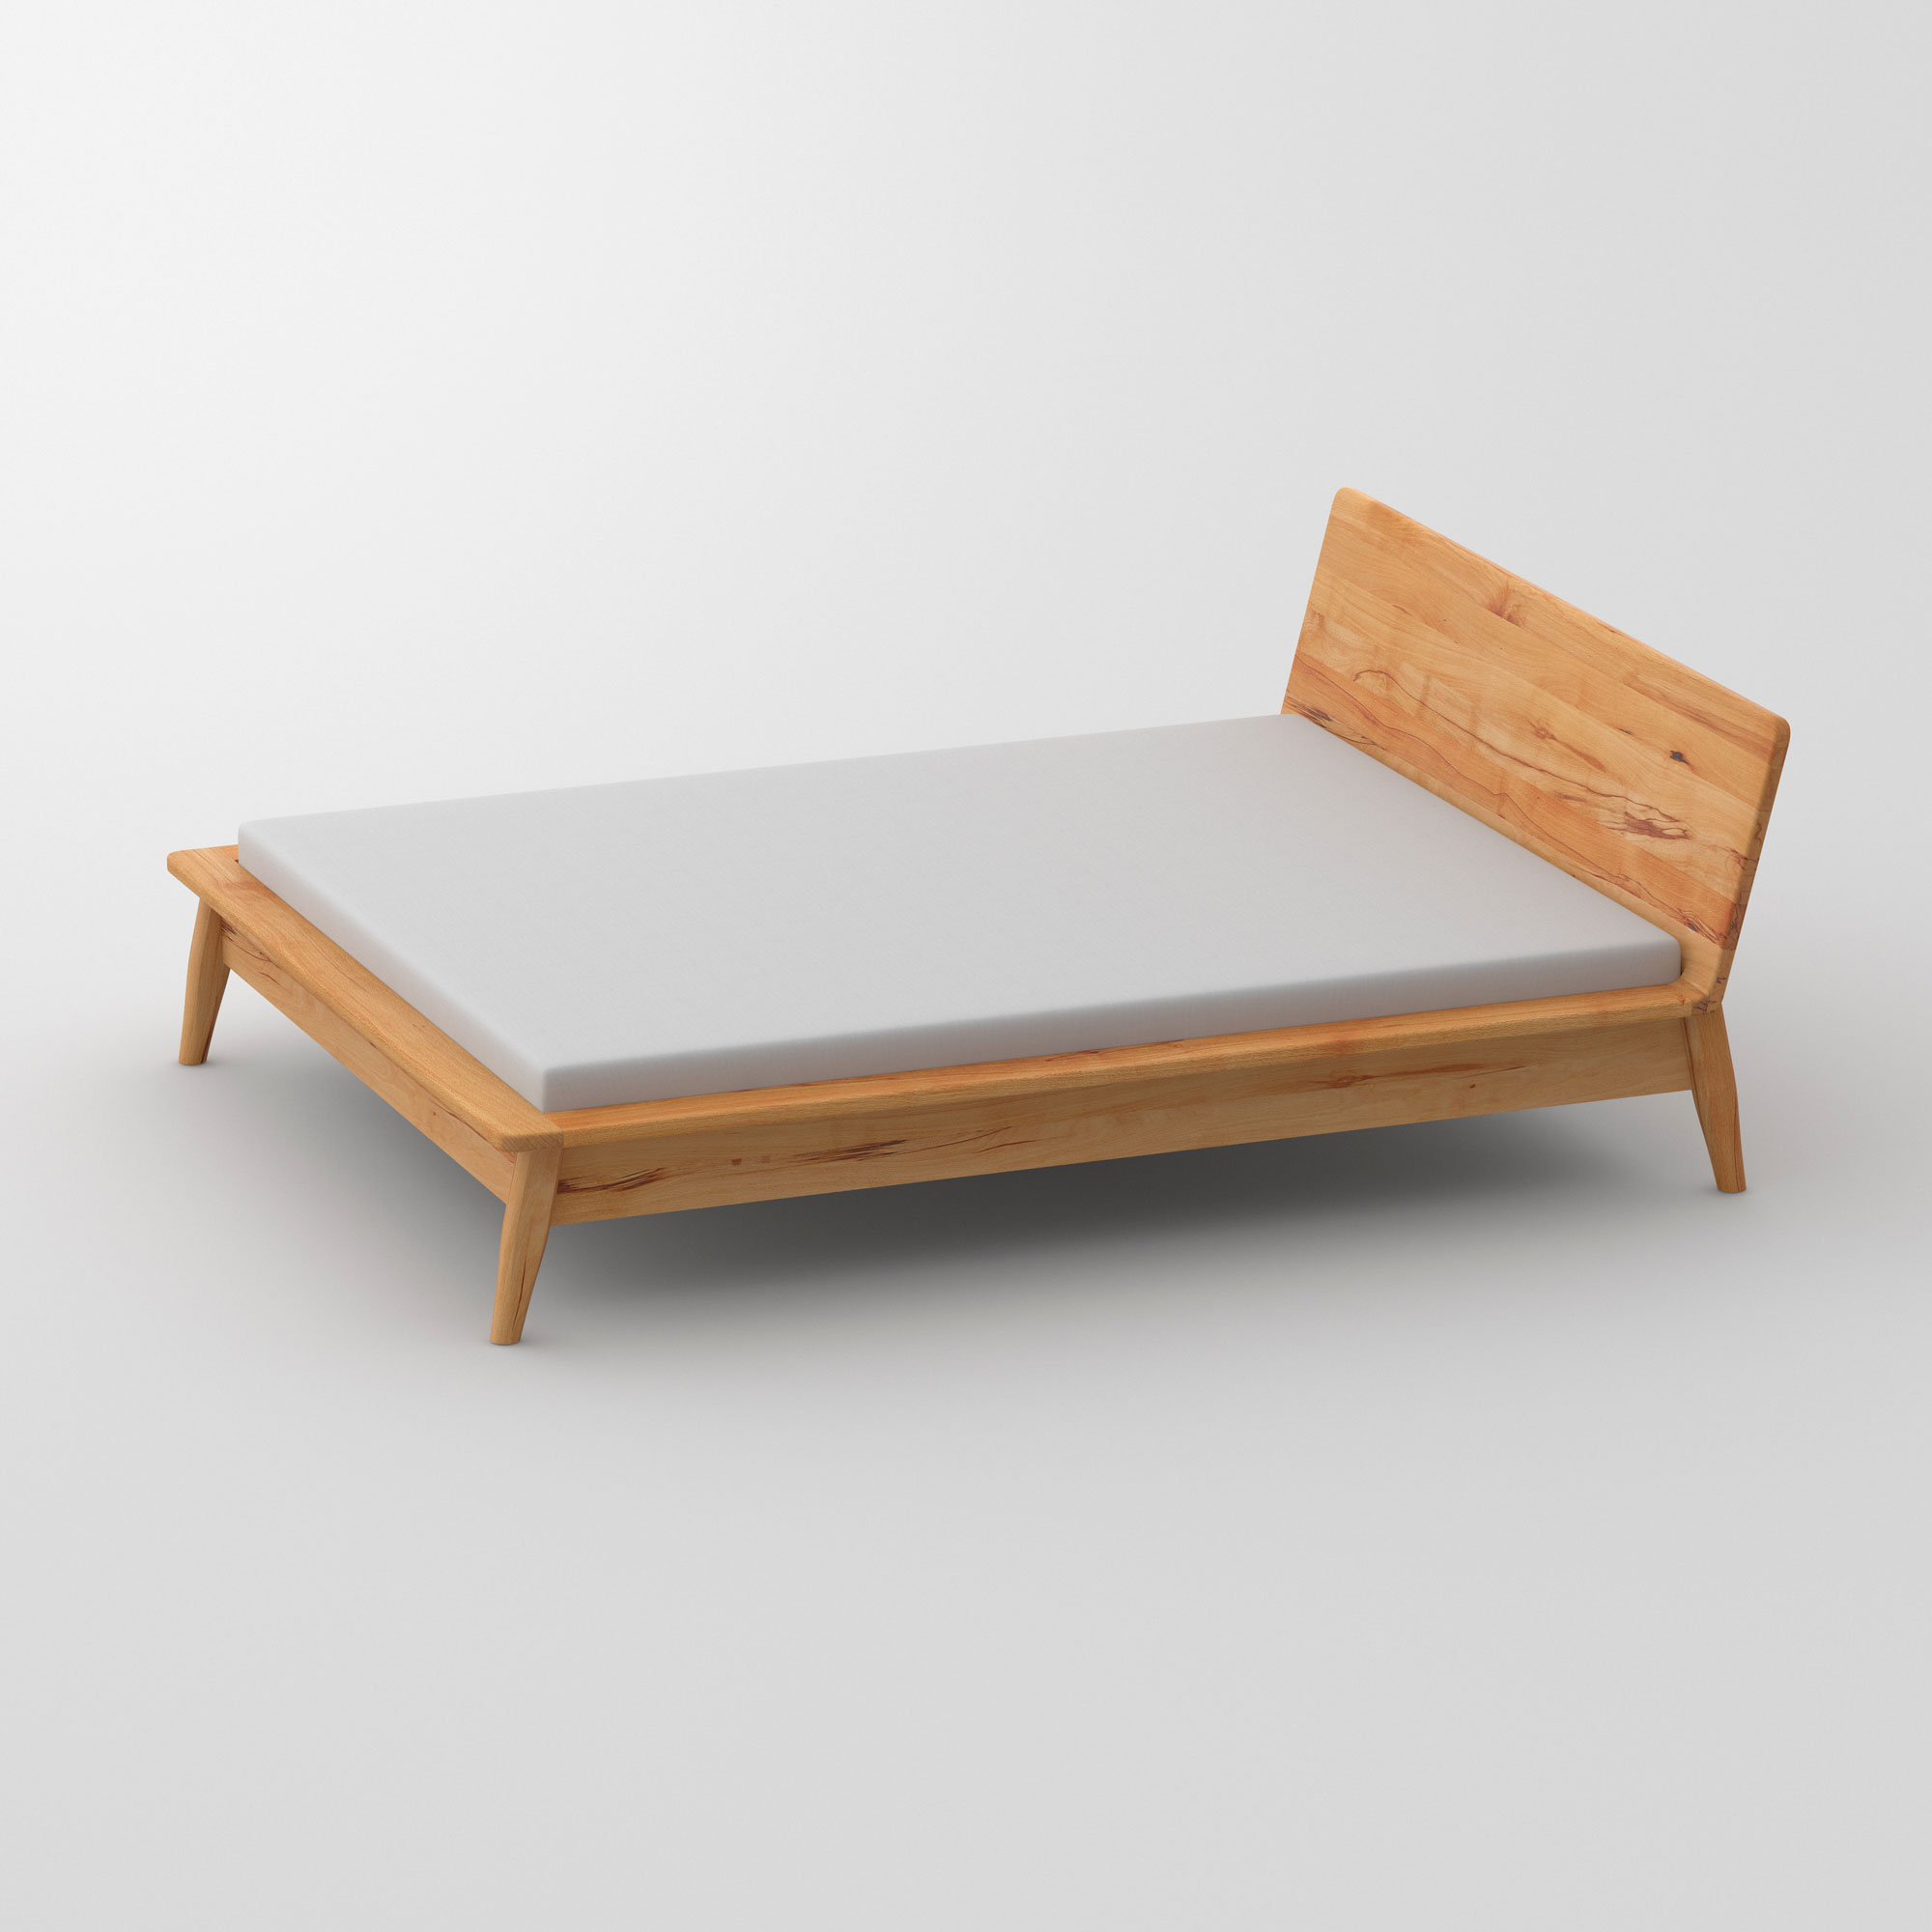 Designer Bed AETAS cam2 custom made in solid wood by vitamin design